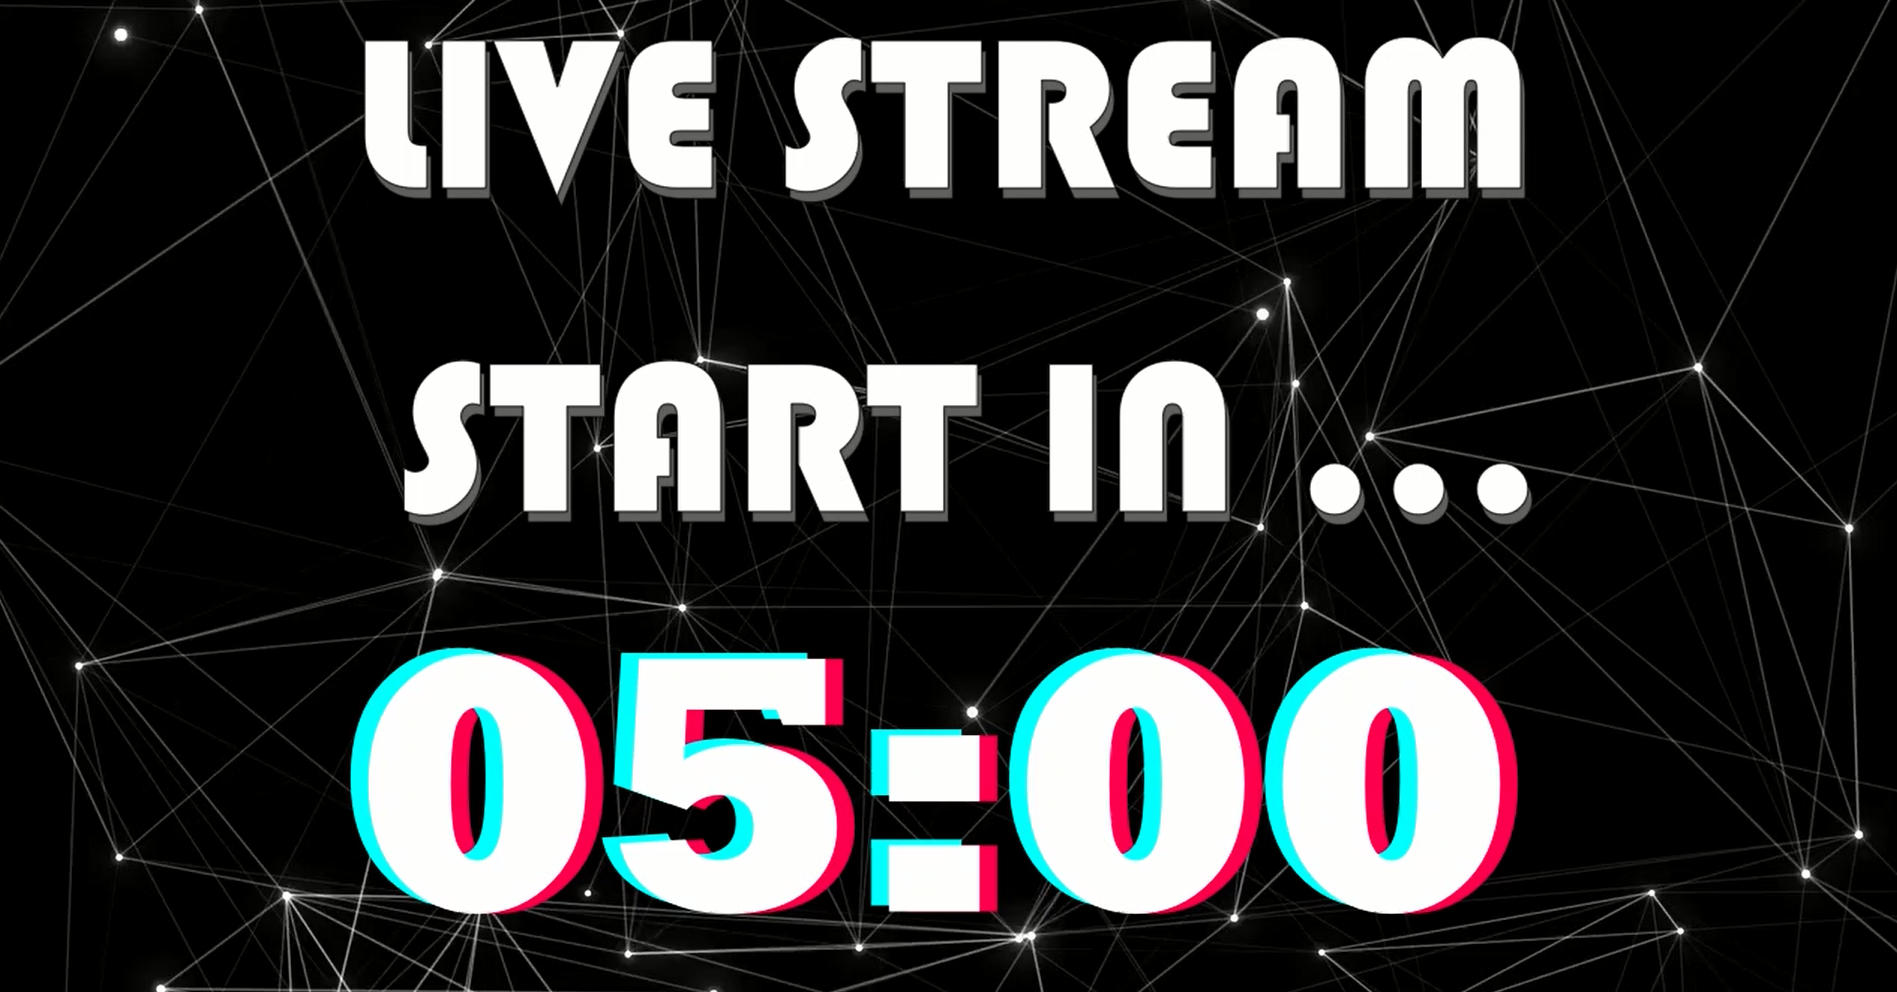 Black Tik Tok Live Stream Start Soon Free Template With Animated Background Animation Background Streaming Intro